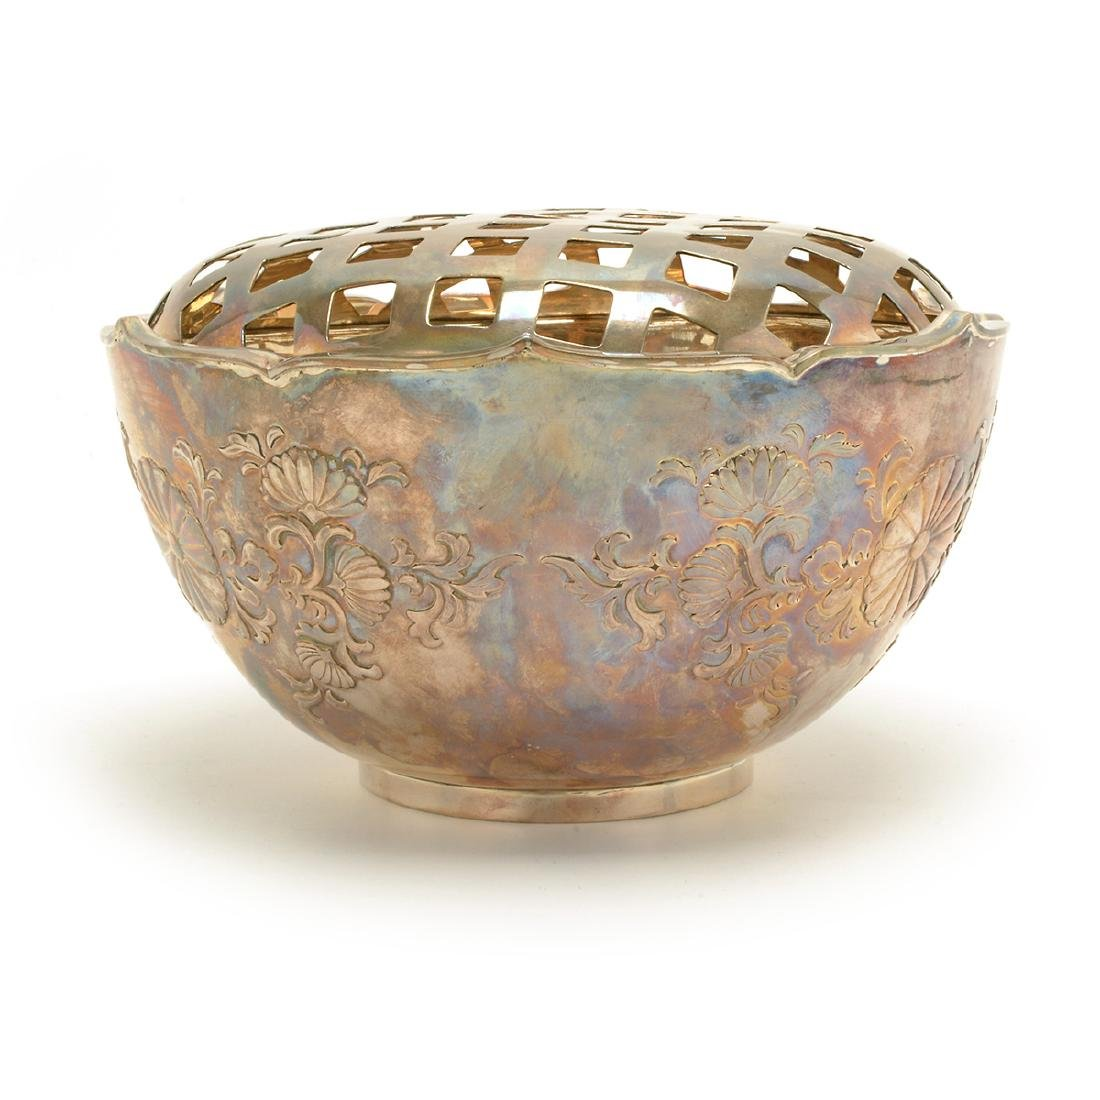 Foliated Silver Bowl and Lid, Early 20th Century - 2